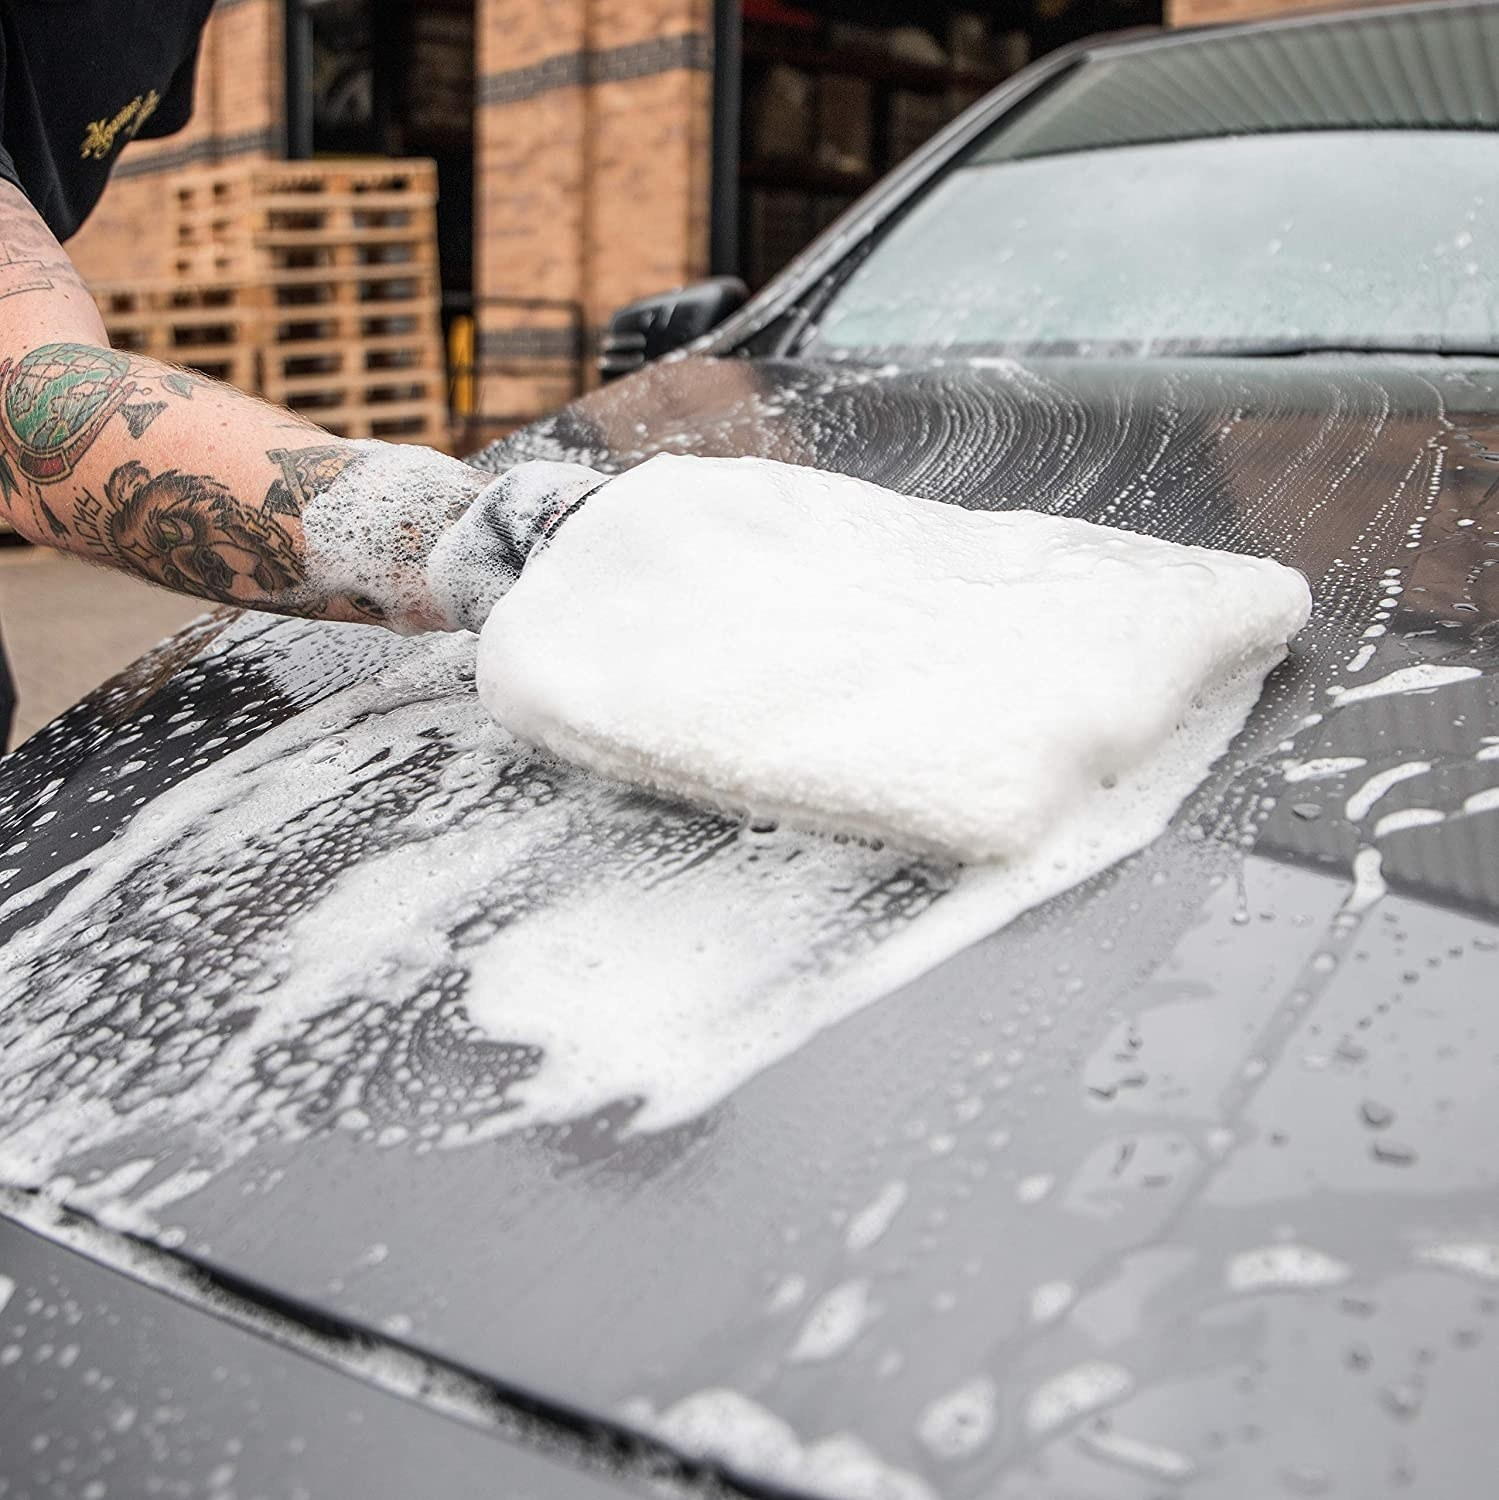 A person wearing a large fluffy wet mitt to wash their car